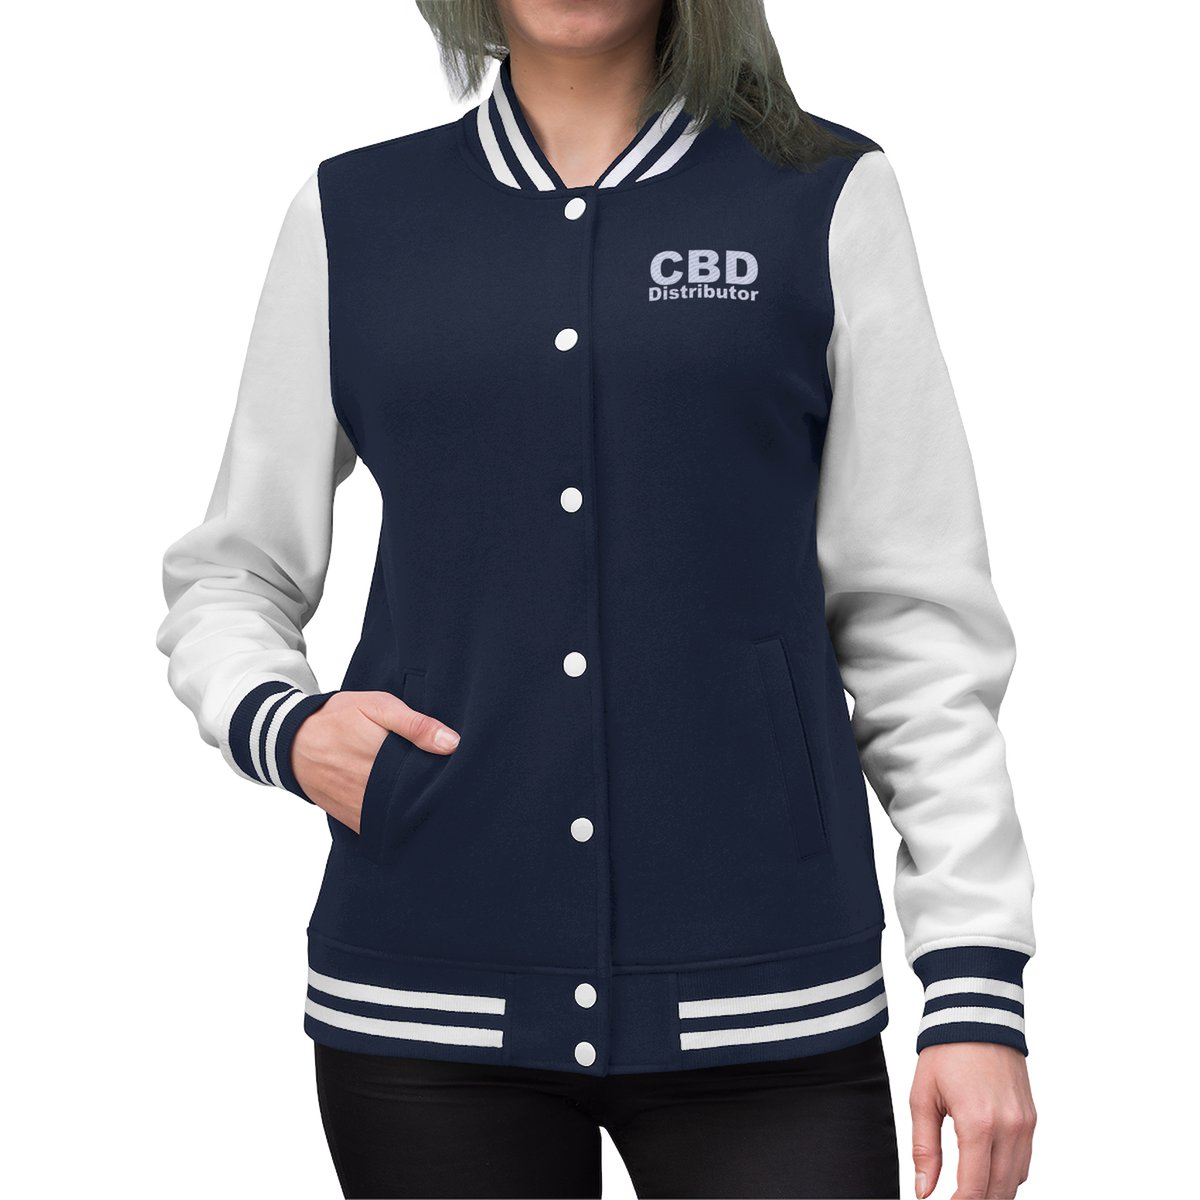 CBD Distributor Varsity Jacket - Promote your CBD Business with Marketing Merchandise - Because no one knows what you do until you tell them  #CBD #Hempdistributor #CBDdistributor #ctfo #hempworx #CBDMD #hempwHerbals #auroracannabis #swagforcbd